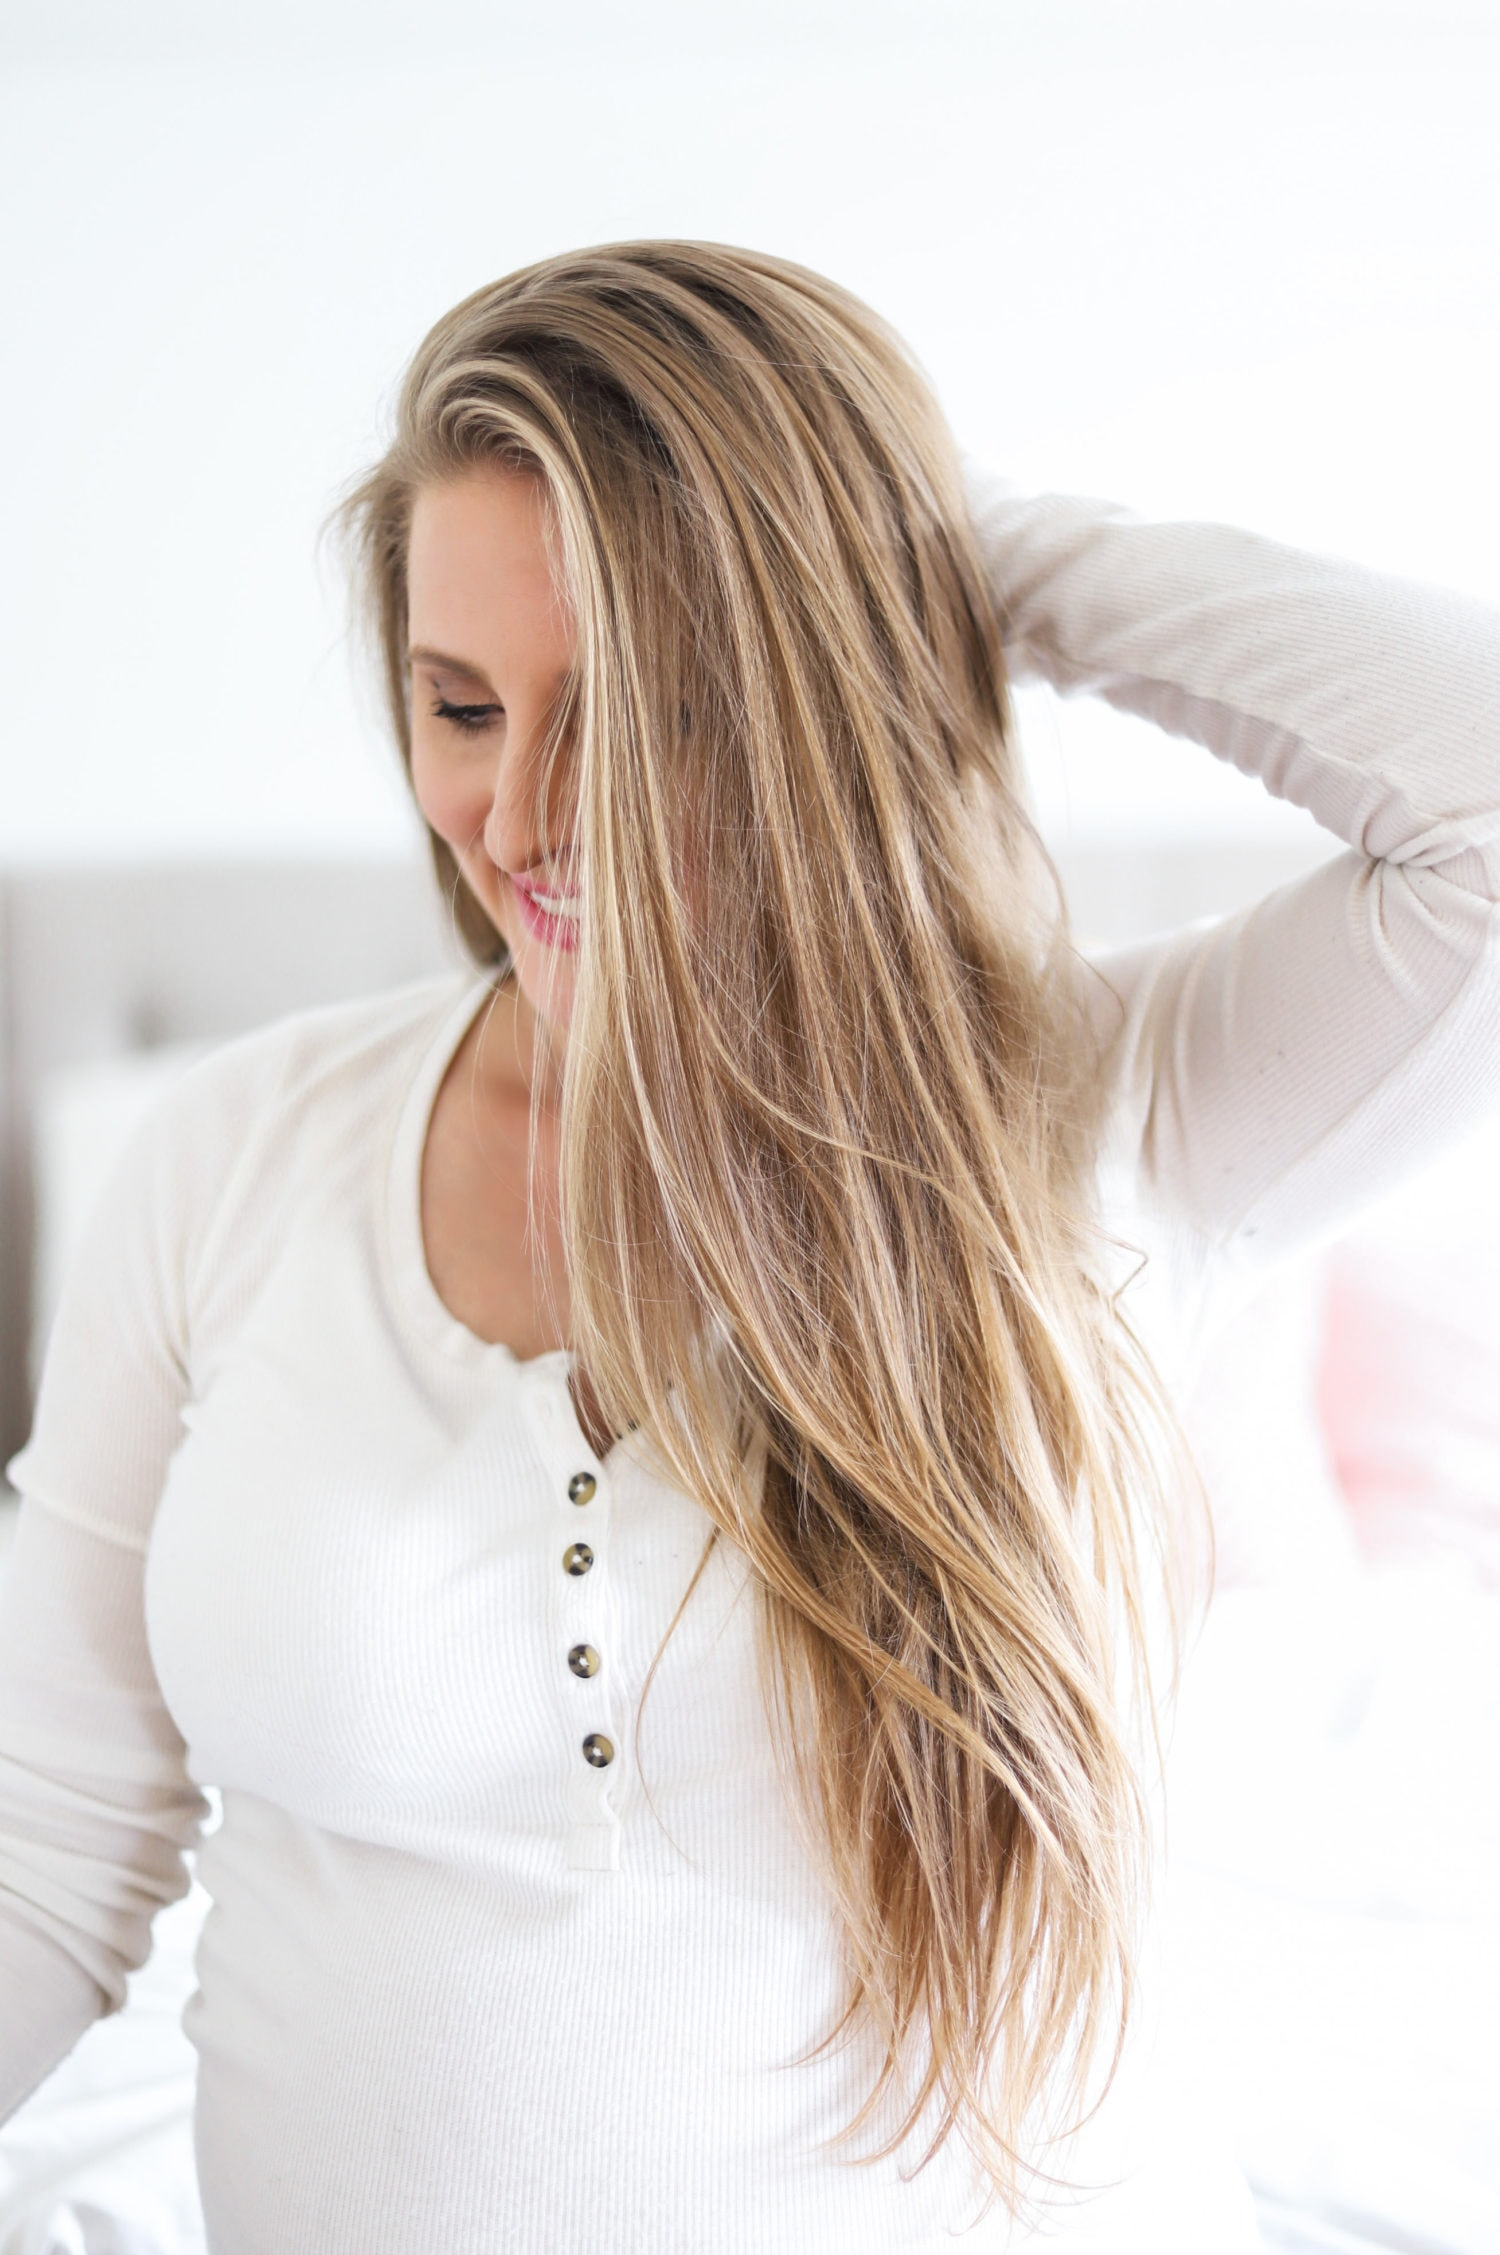 Learn how to get a salon-quality blowout at home in less time with Orlando, Florida beauty blogger Ashley Brooke Nicholas in this easy blog and video tutorial.